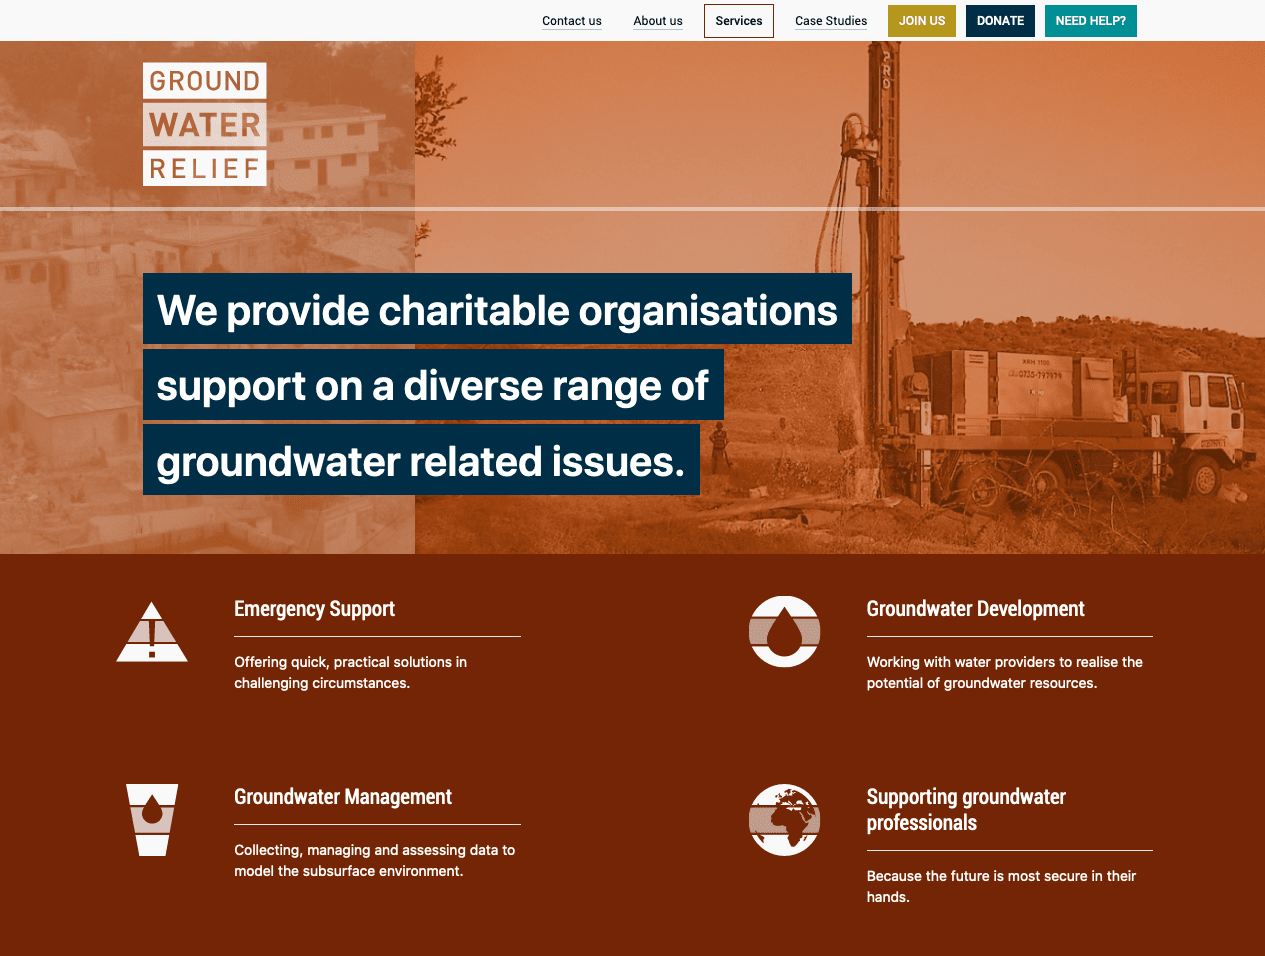 Screenshot from of Groundwater Relief Services page